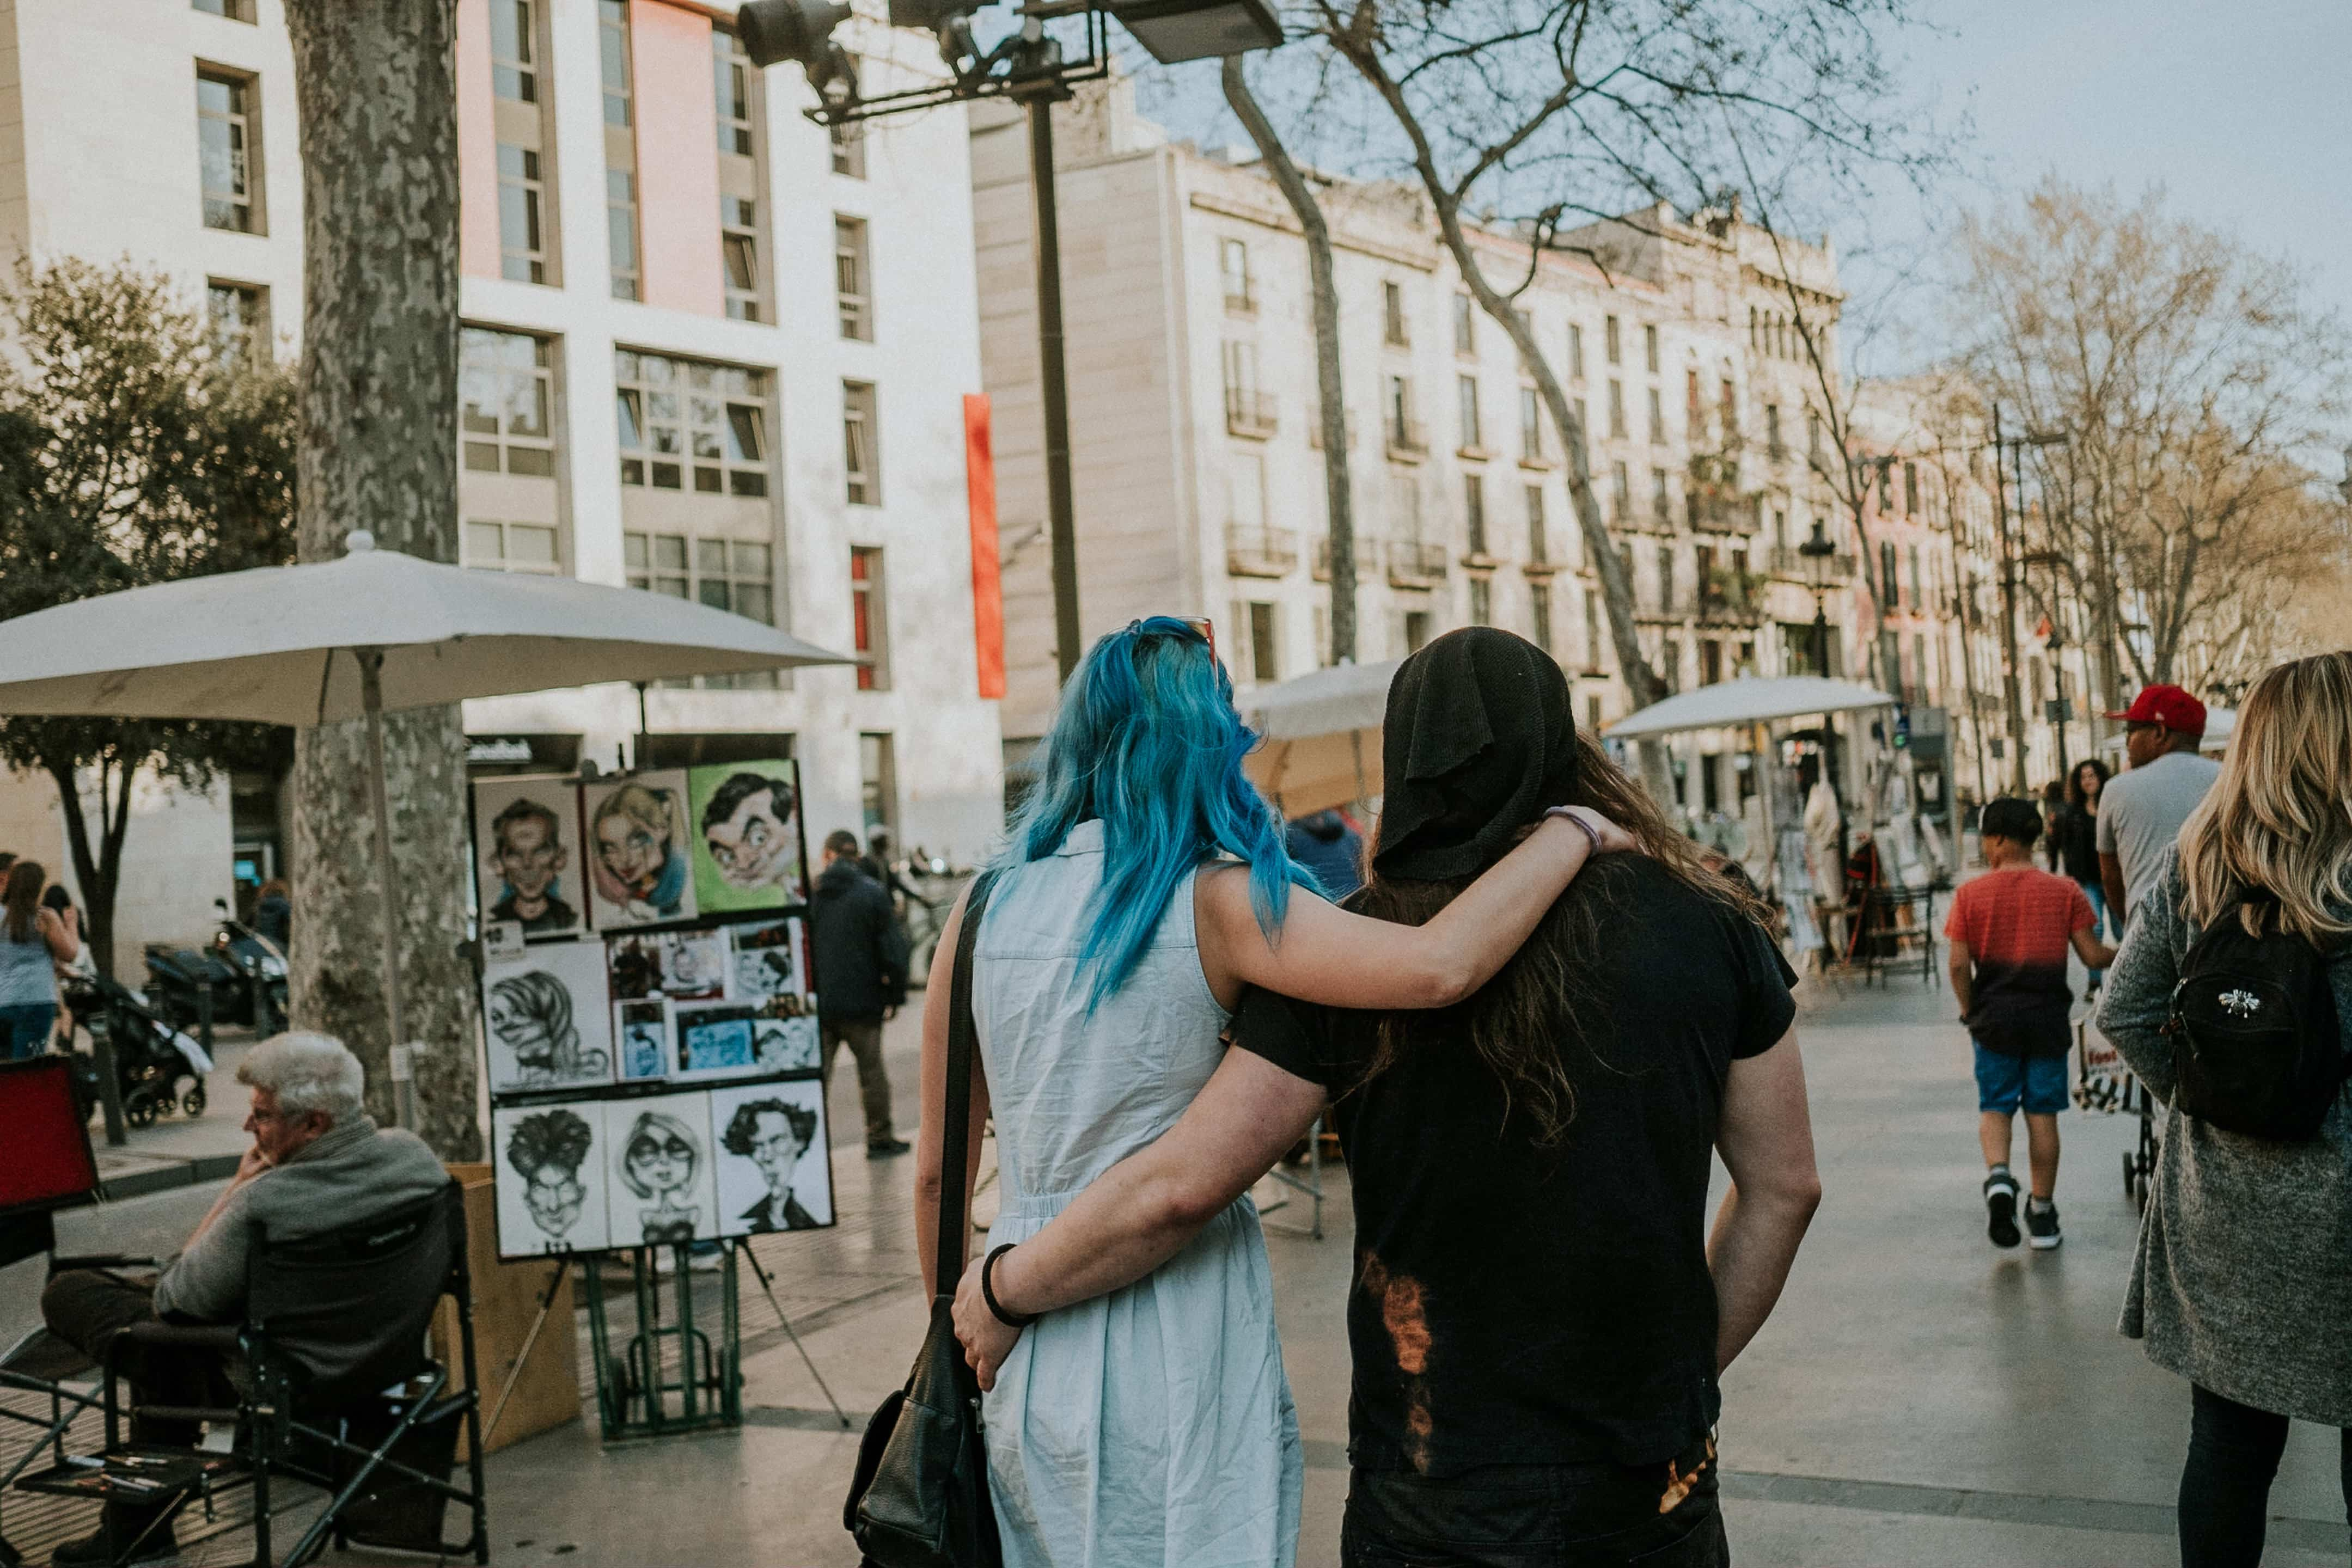 A young couple embracing as they walk down Las Ramblas, Barcelona